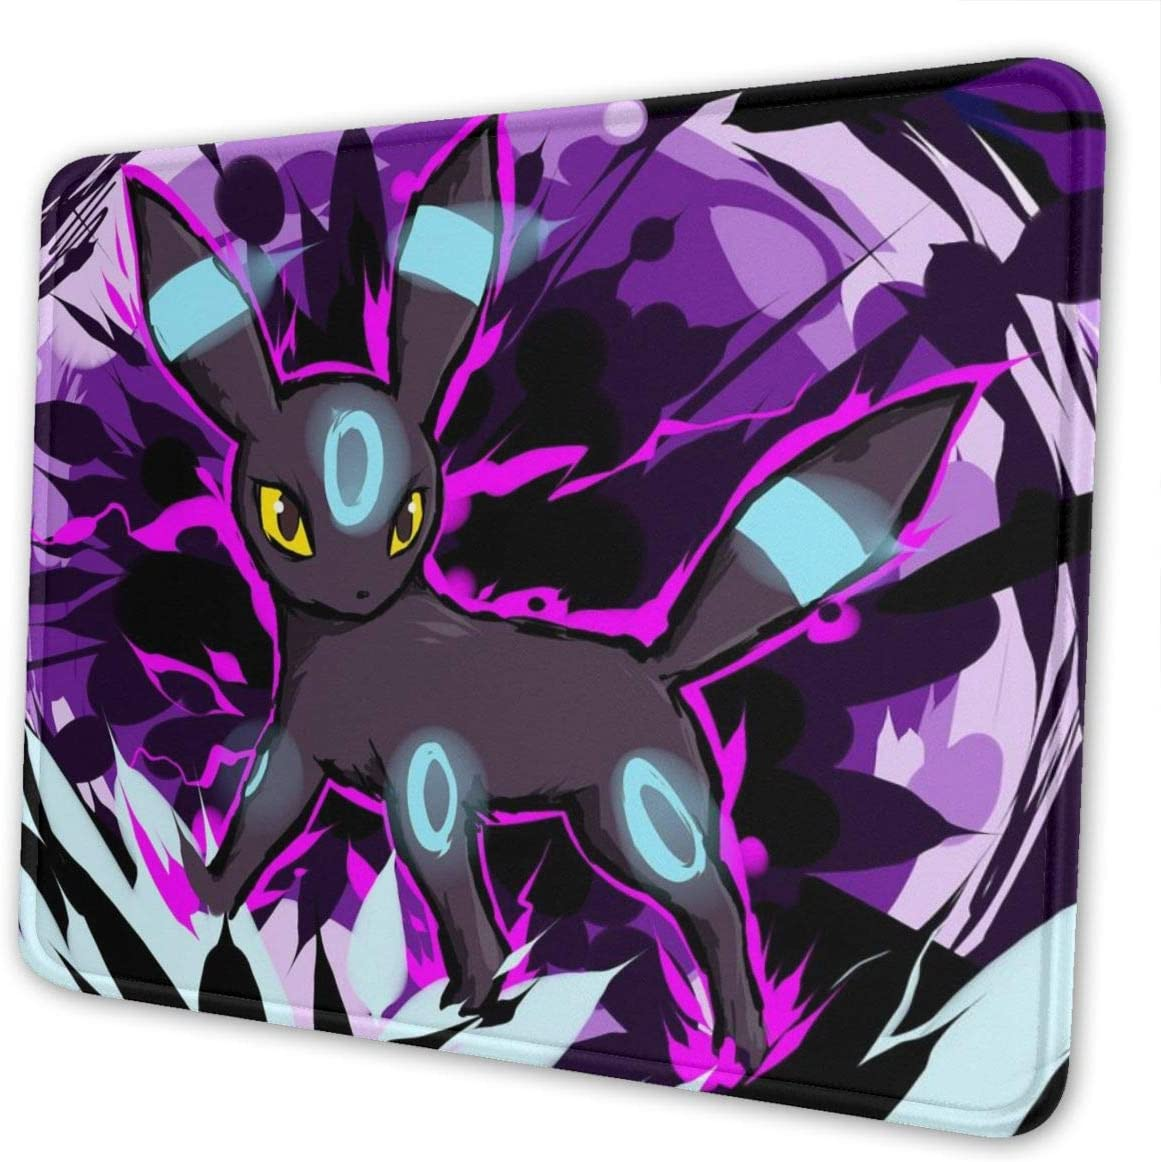 Desk Mat Non-Slip Rubber Stitched Edges Umbreon Attack Gaming Mouse Pad 4 Size